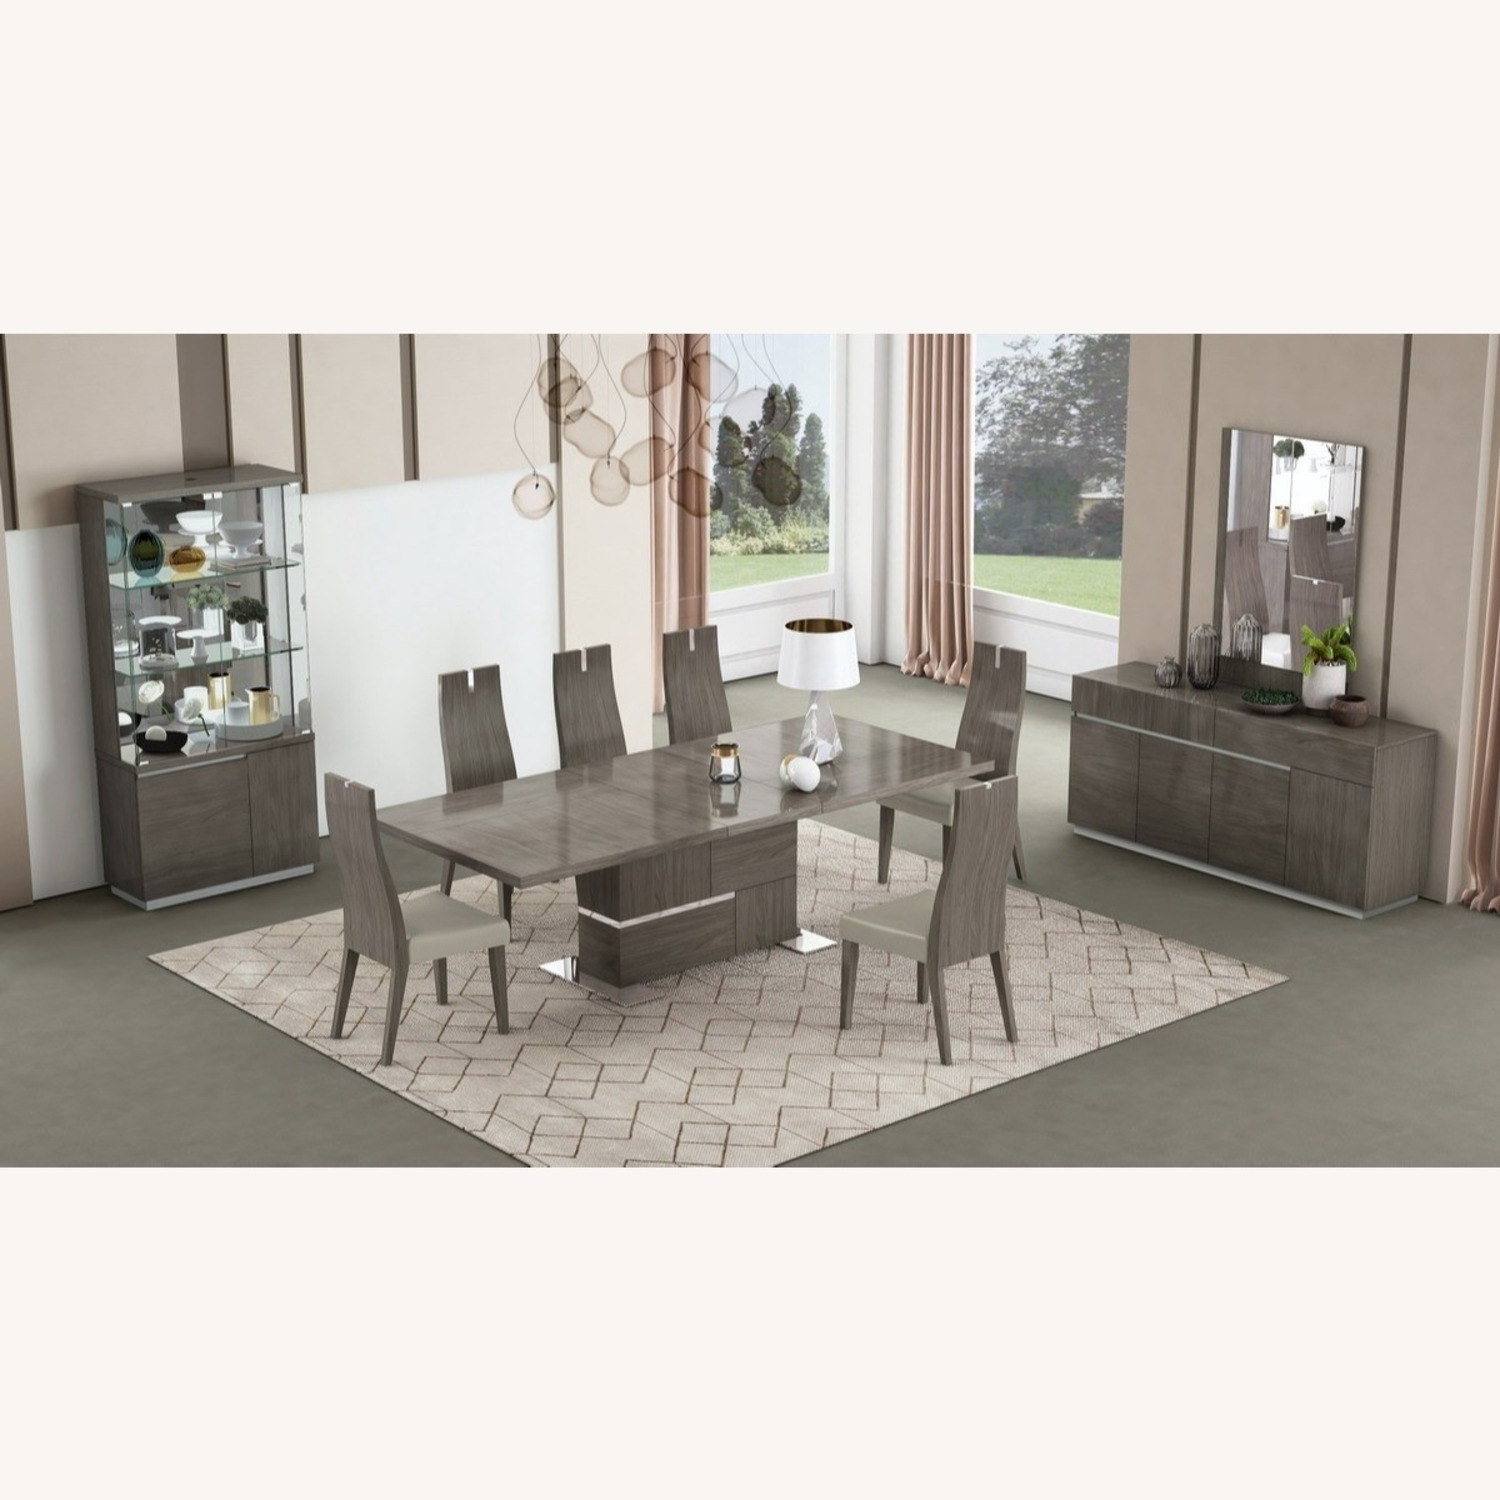 Modern Buffet In Grey Lacquer W/ Taupe Accents - image-2